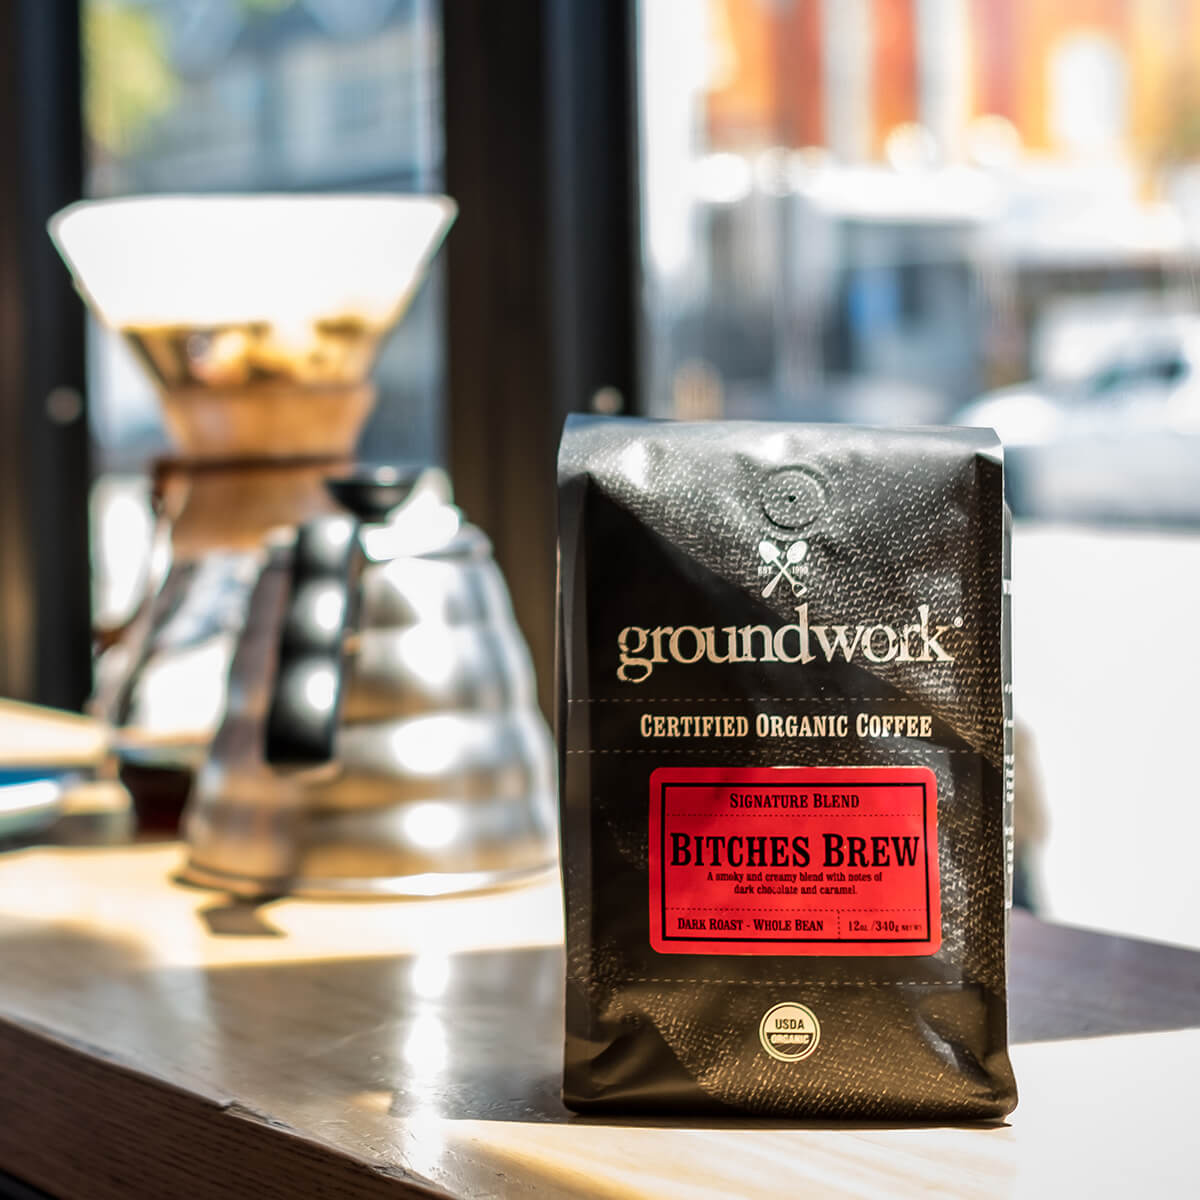 bag of groundwork's Bitches Brew coffee on shop counter